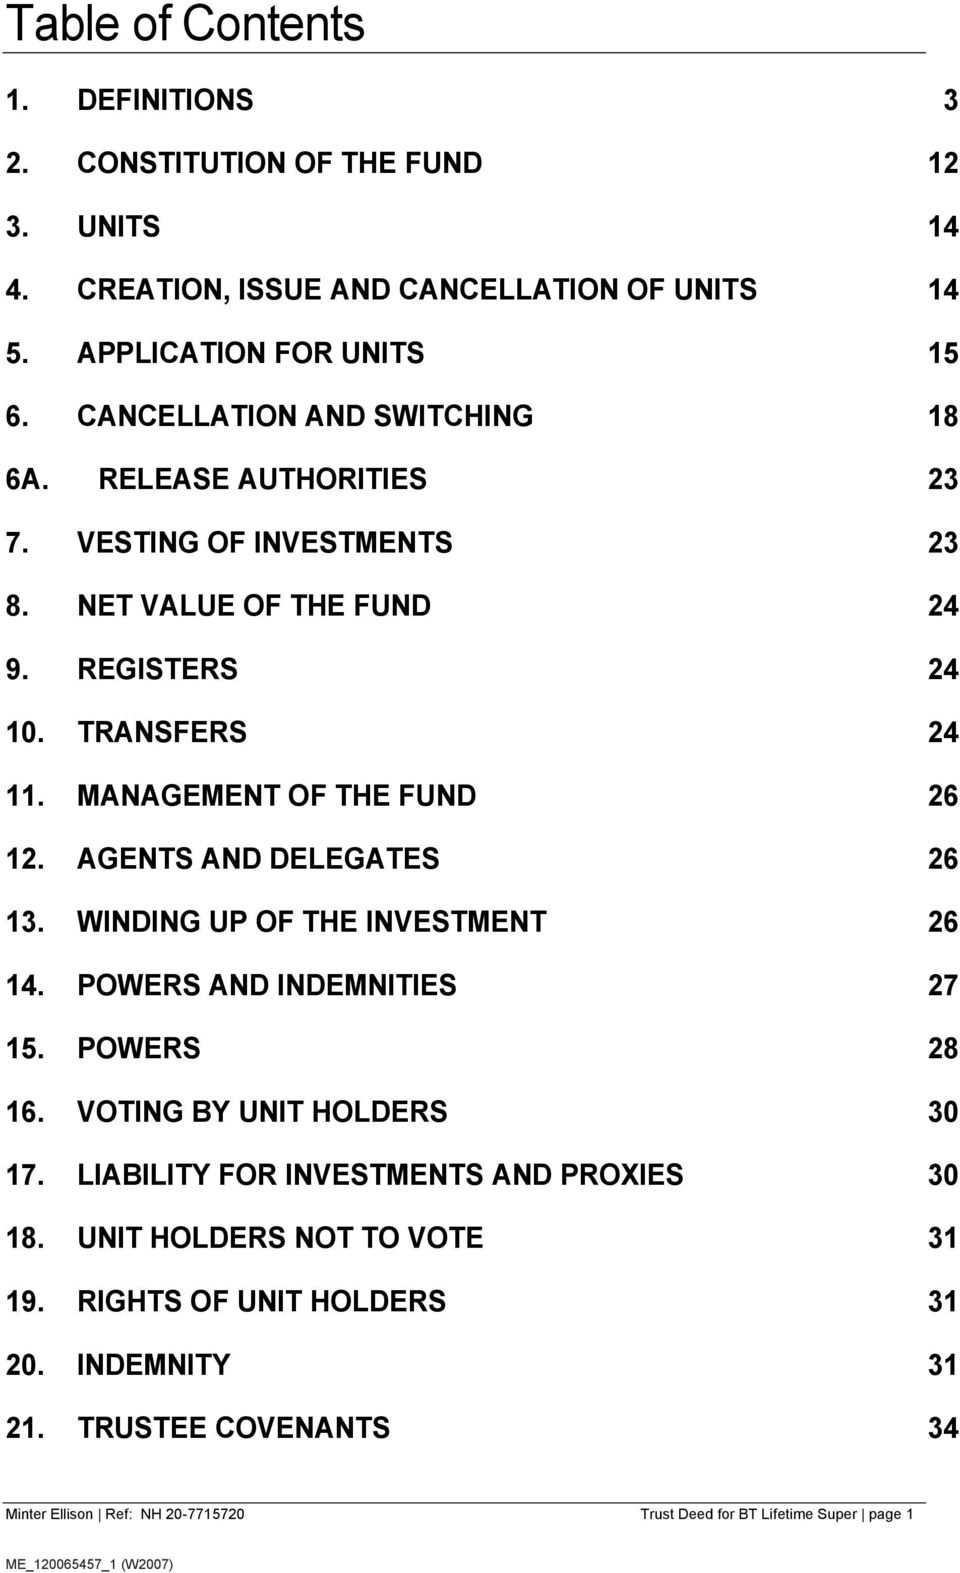 MANAGEMENT OF THE FUND 26 12. AGENTS AND DELEGATES 26 13. WINDING UP OF THE INVESTMENT 26 14. POWERS AND INDEMNITIES 27 15. POWERS 28 16. VOTING BY UNIT HOLDERS 30 17.